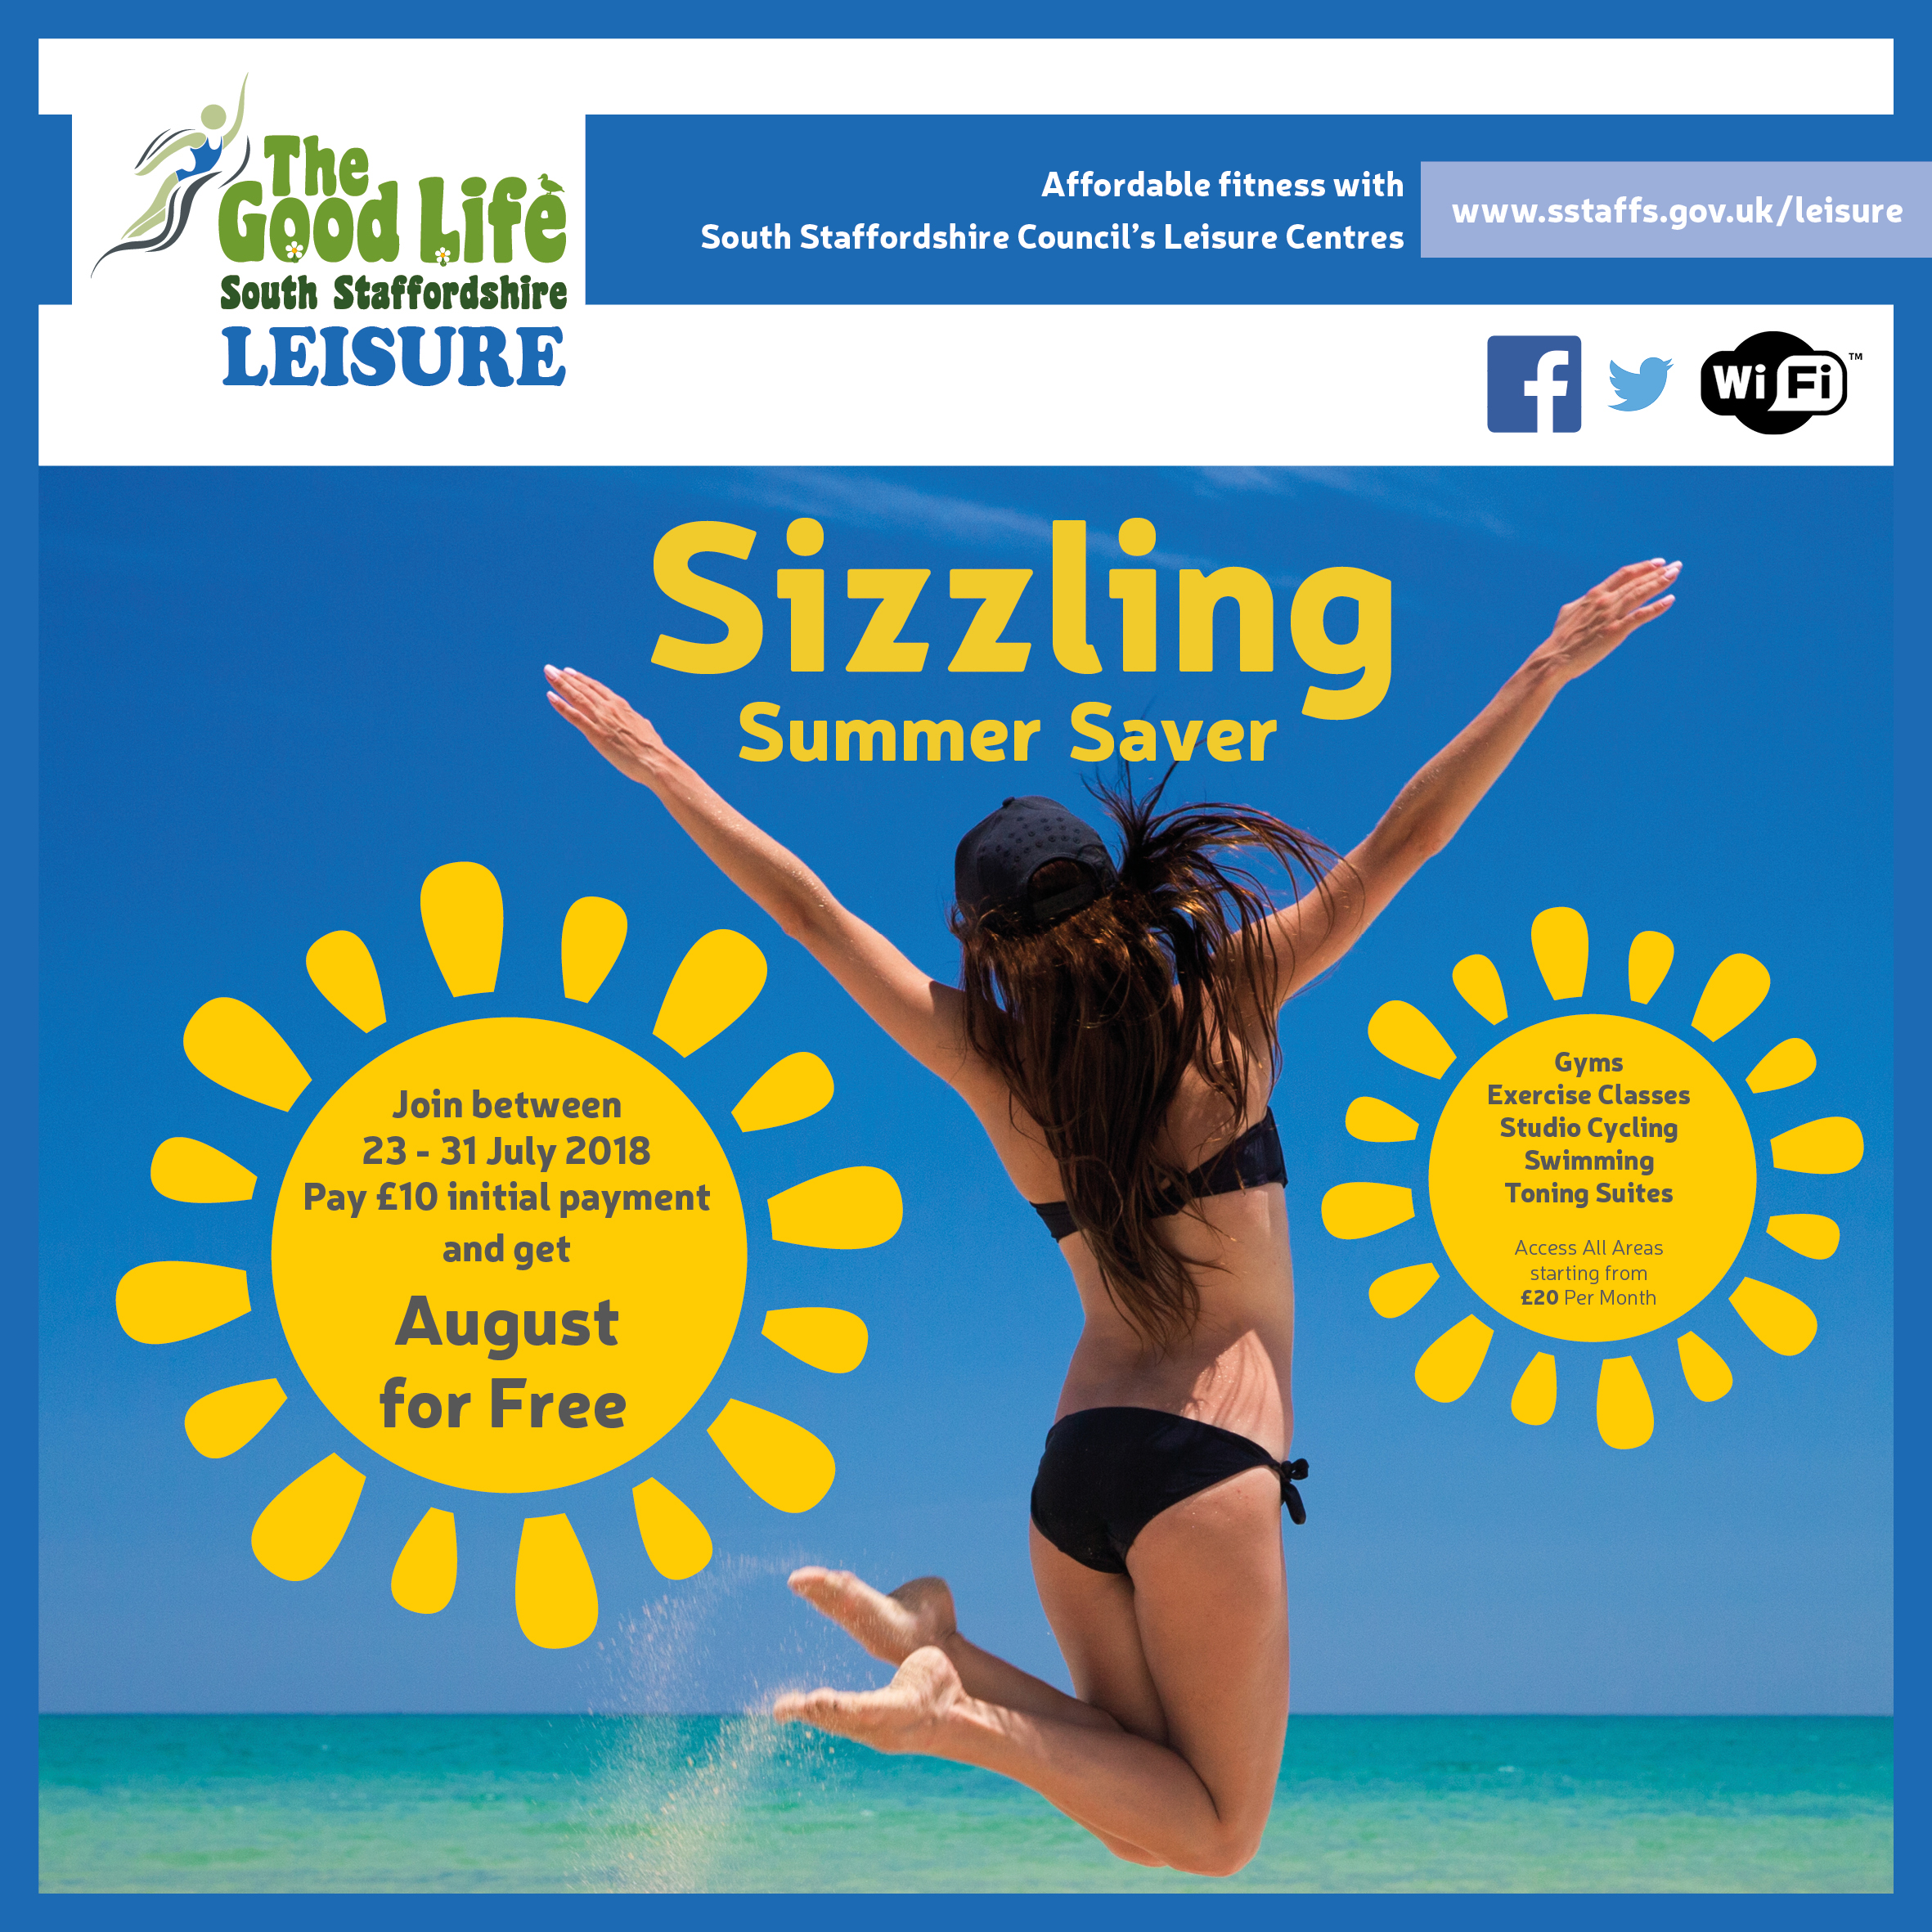 Sizzling summer saver